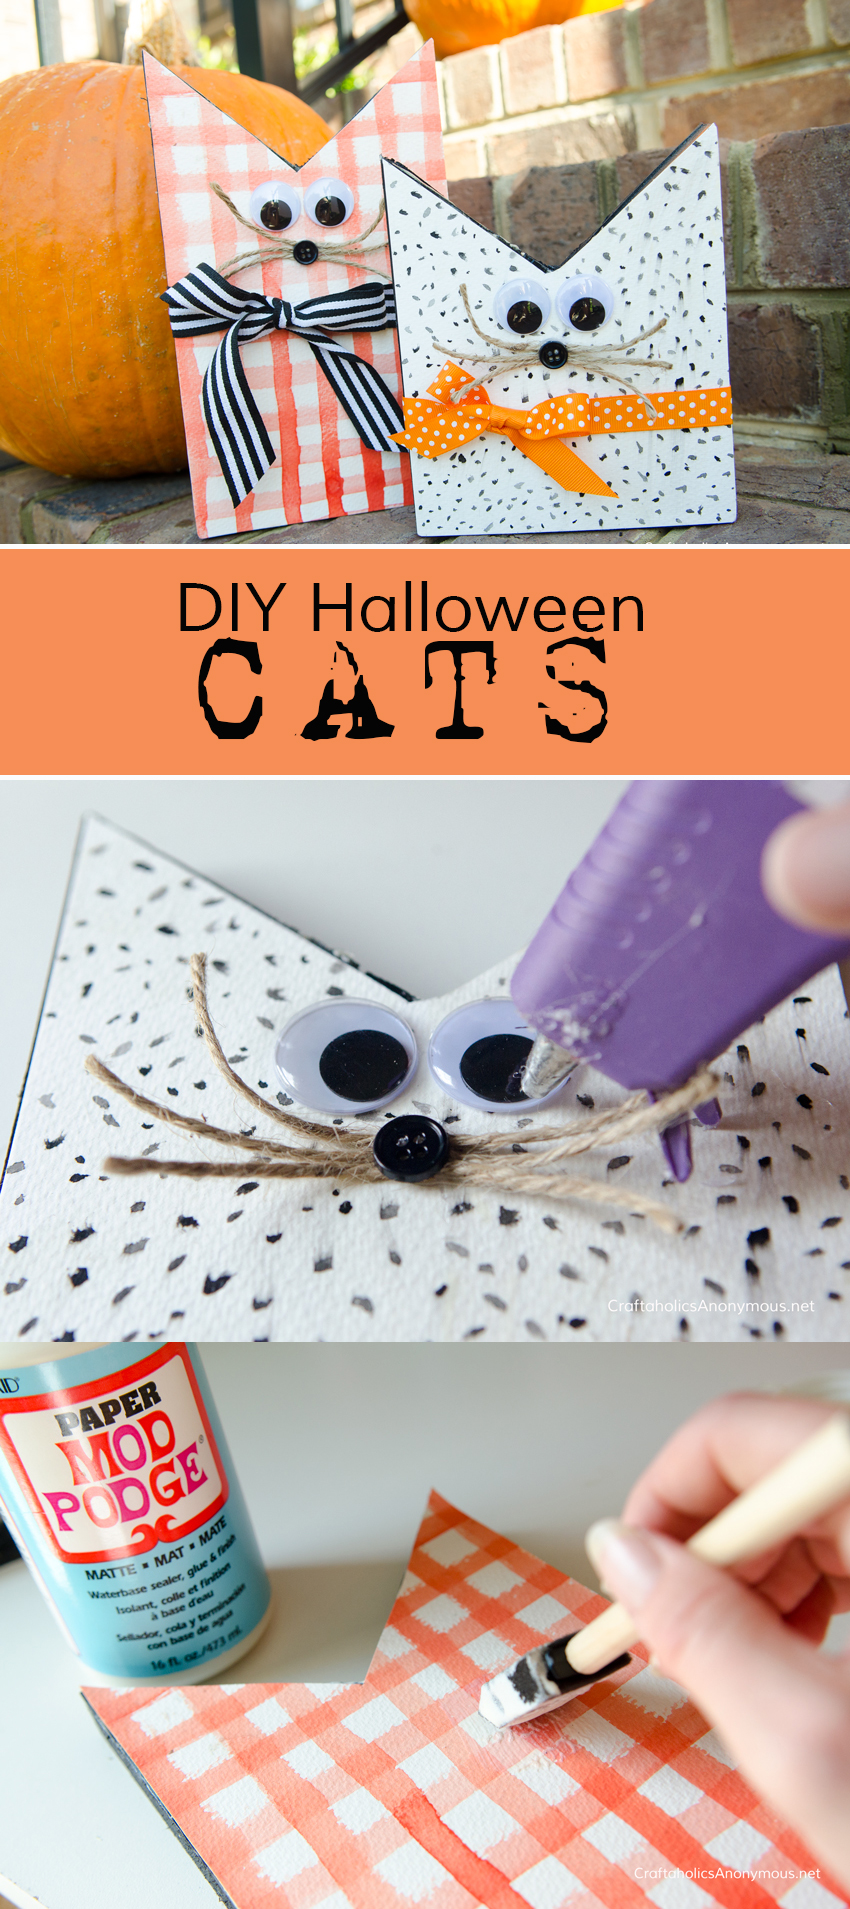 DIY Halloween Cats craft idea